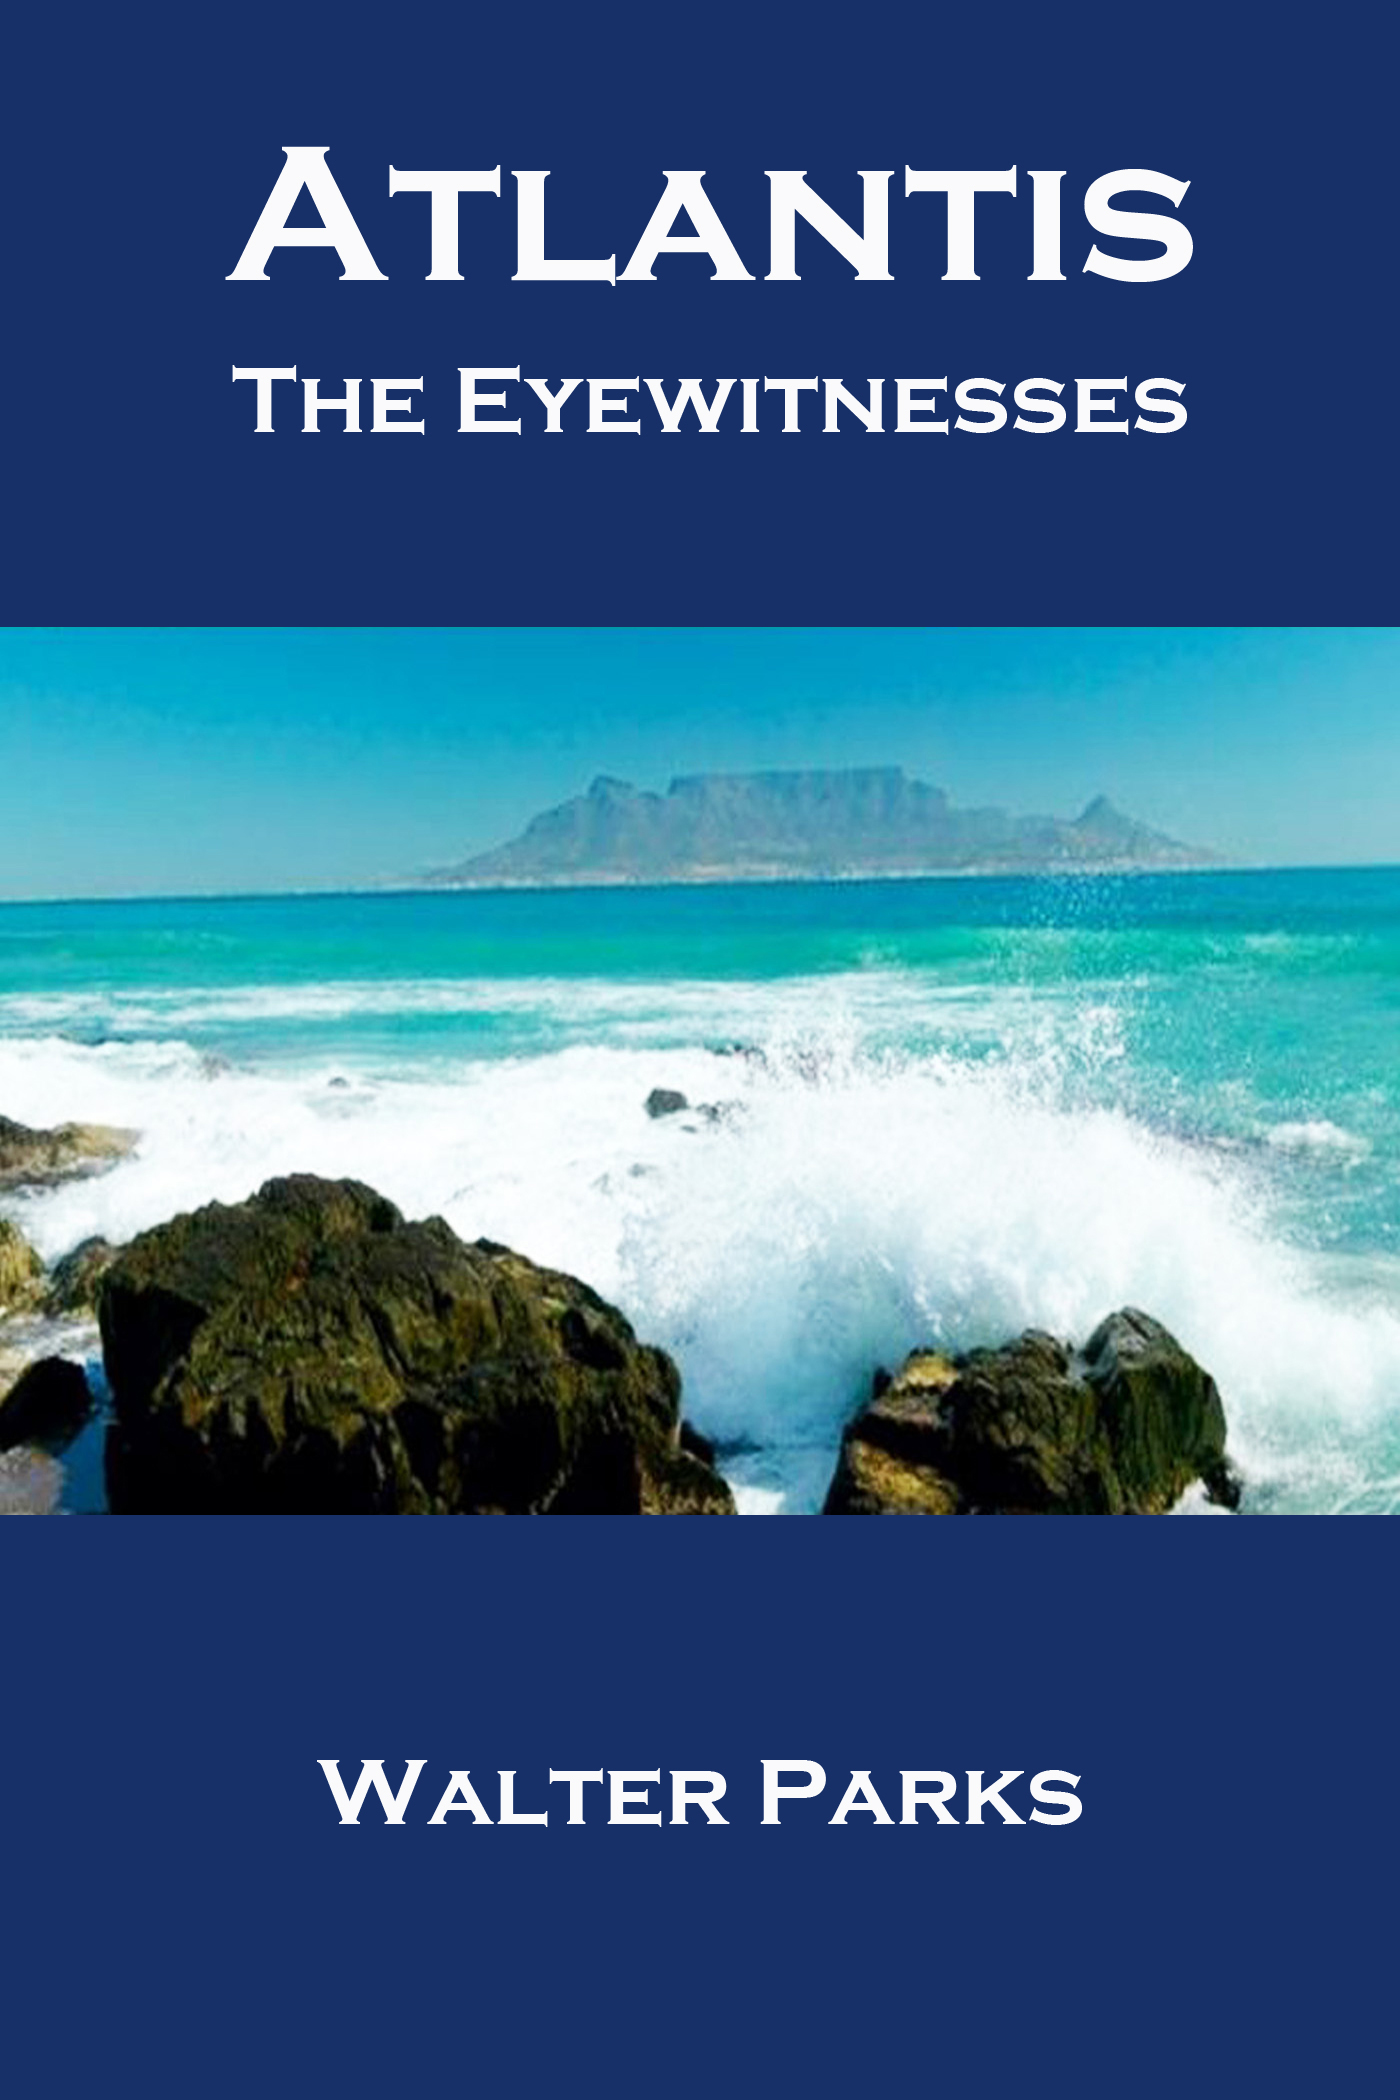 Atlantis the eyewitnesses part i: the creation of atlantis (atlantis the eyewitnesses series book 1)